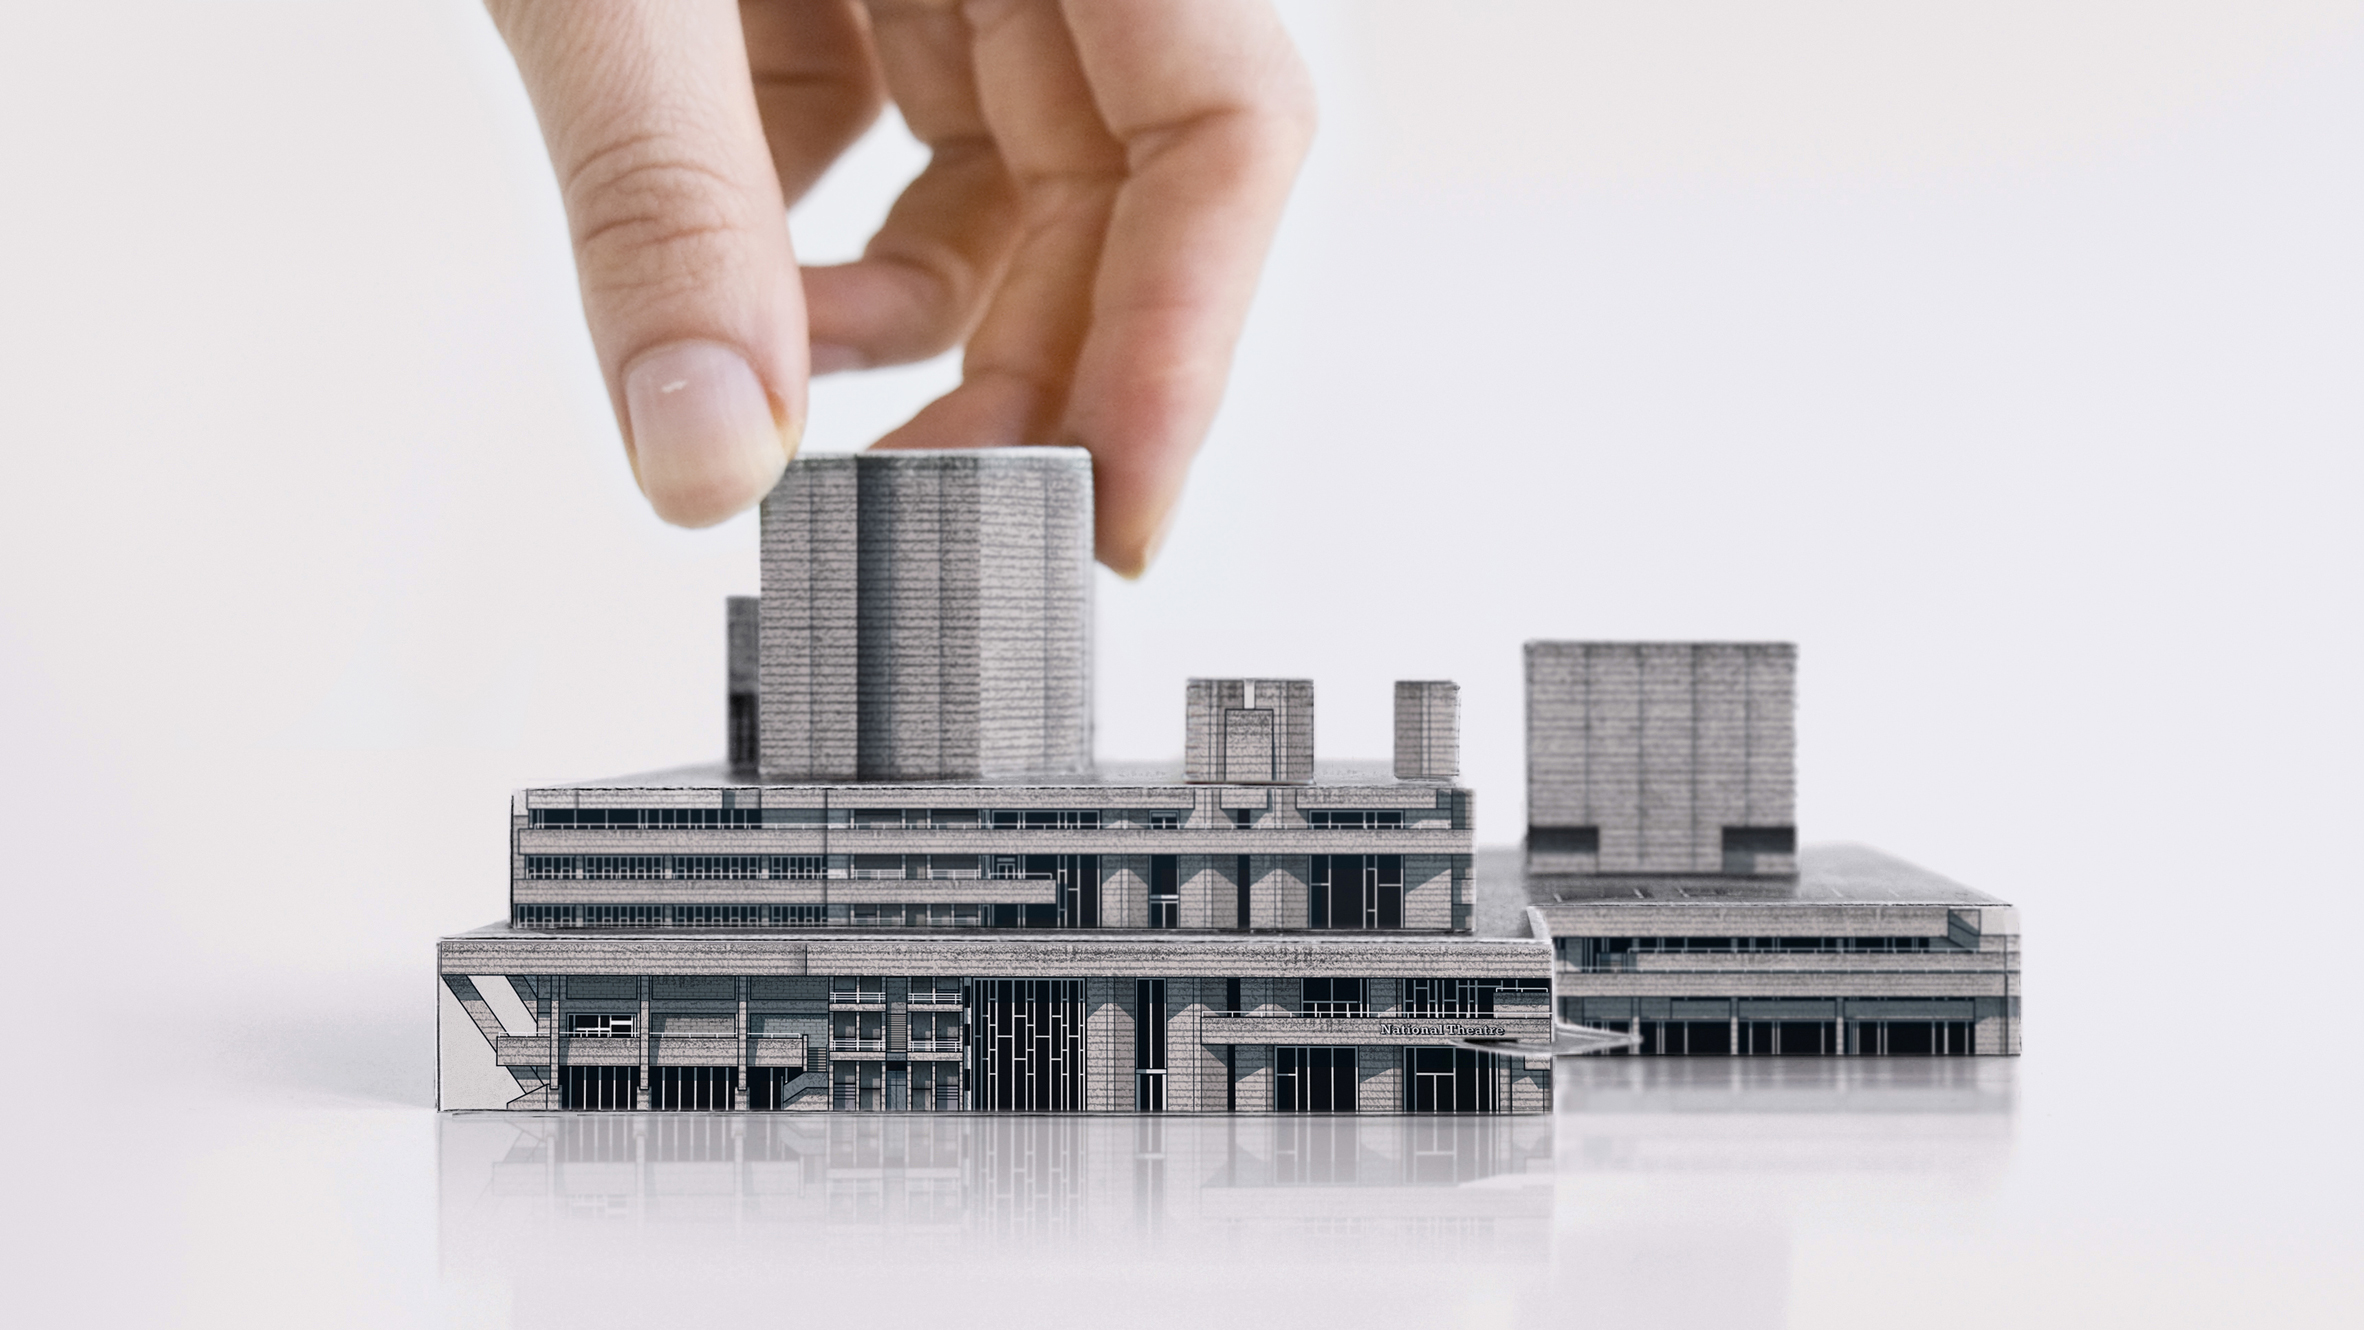 brutal-london-construct-your-own-concrete-capital-zupagrafika-competitions-books_dezeen_hero